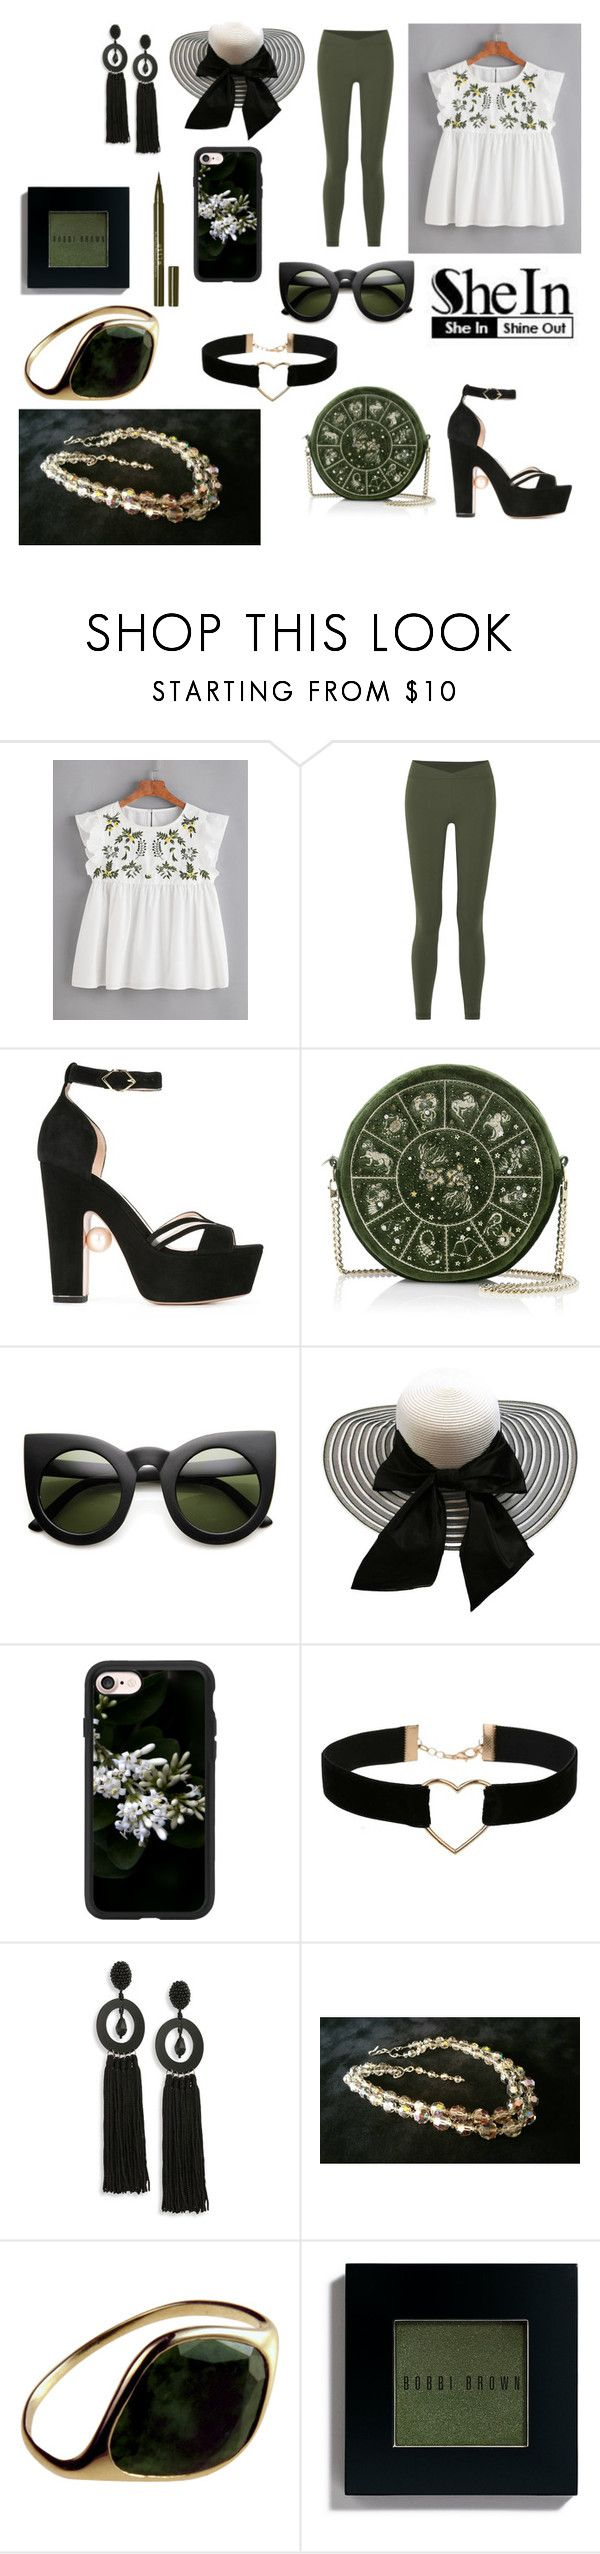 """WIN SHEIN $30 COUPON"" by giulia-ostara-re ❤ liked on Polyvore featuring Live the Process, Nicholas Kirkwood, ZeroUV, Casetify, Miss Selfridge, Oscar de la Renta, Bobbi Brown Cosmetics and Stila"